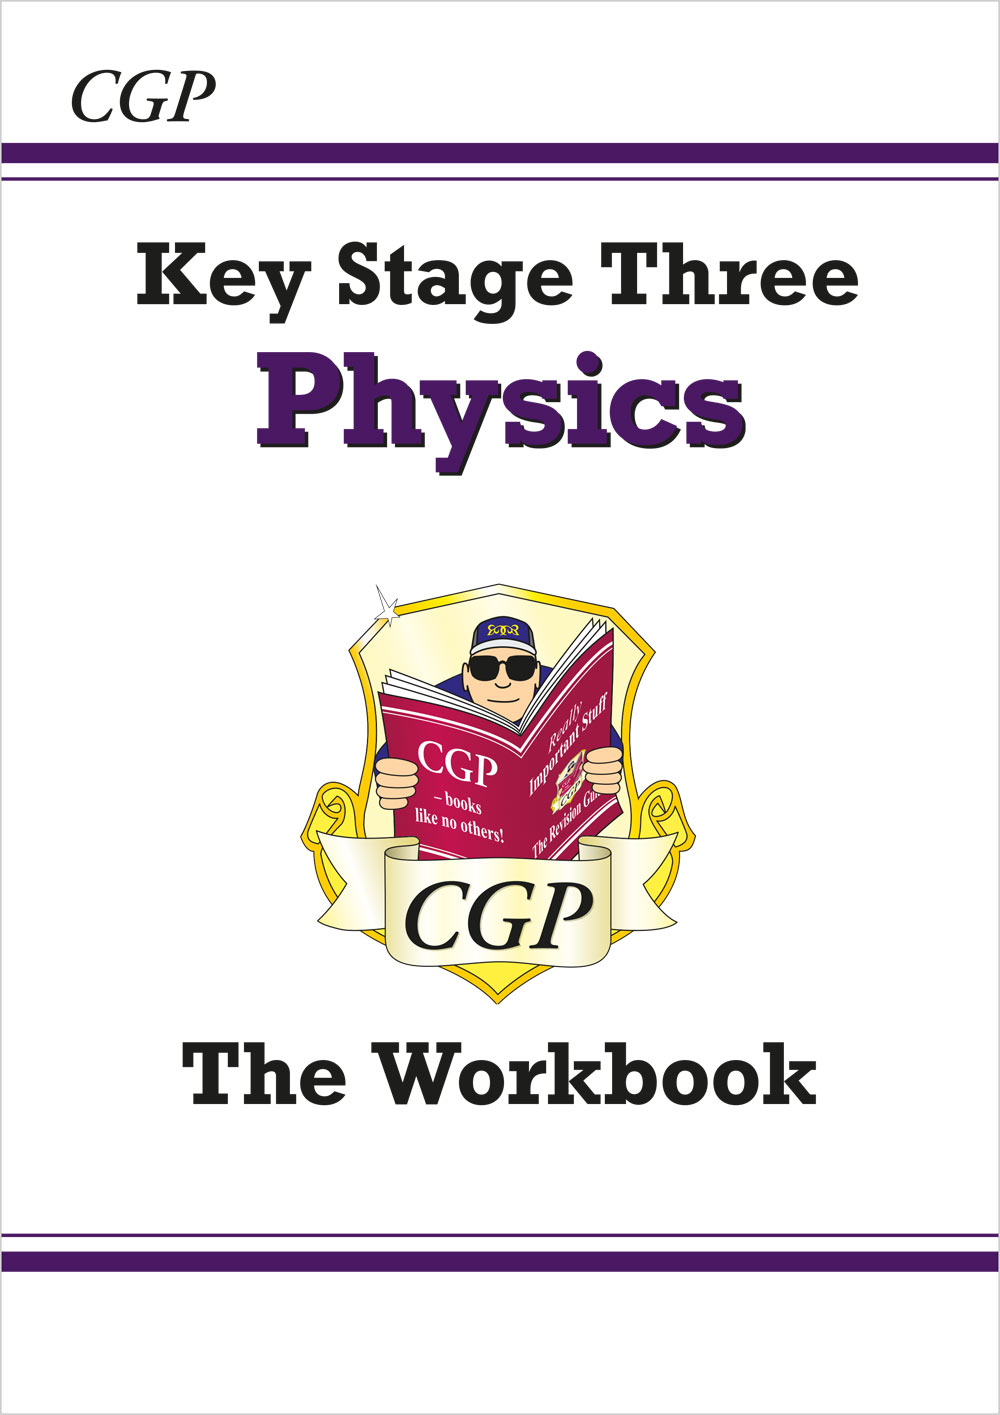 PHW32 - KS3 Physics Workbook - Higher